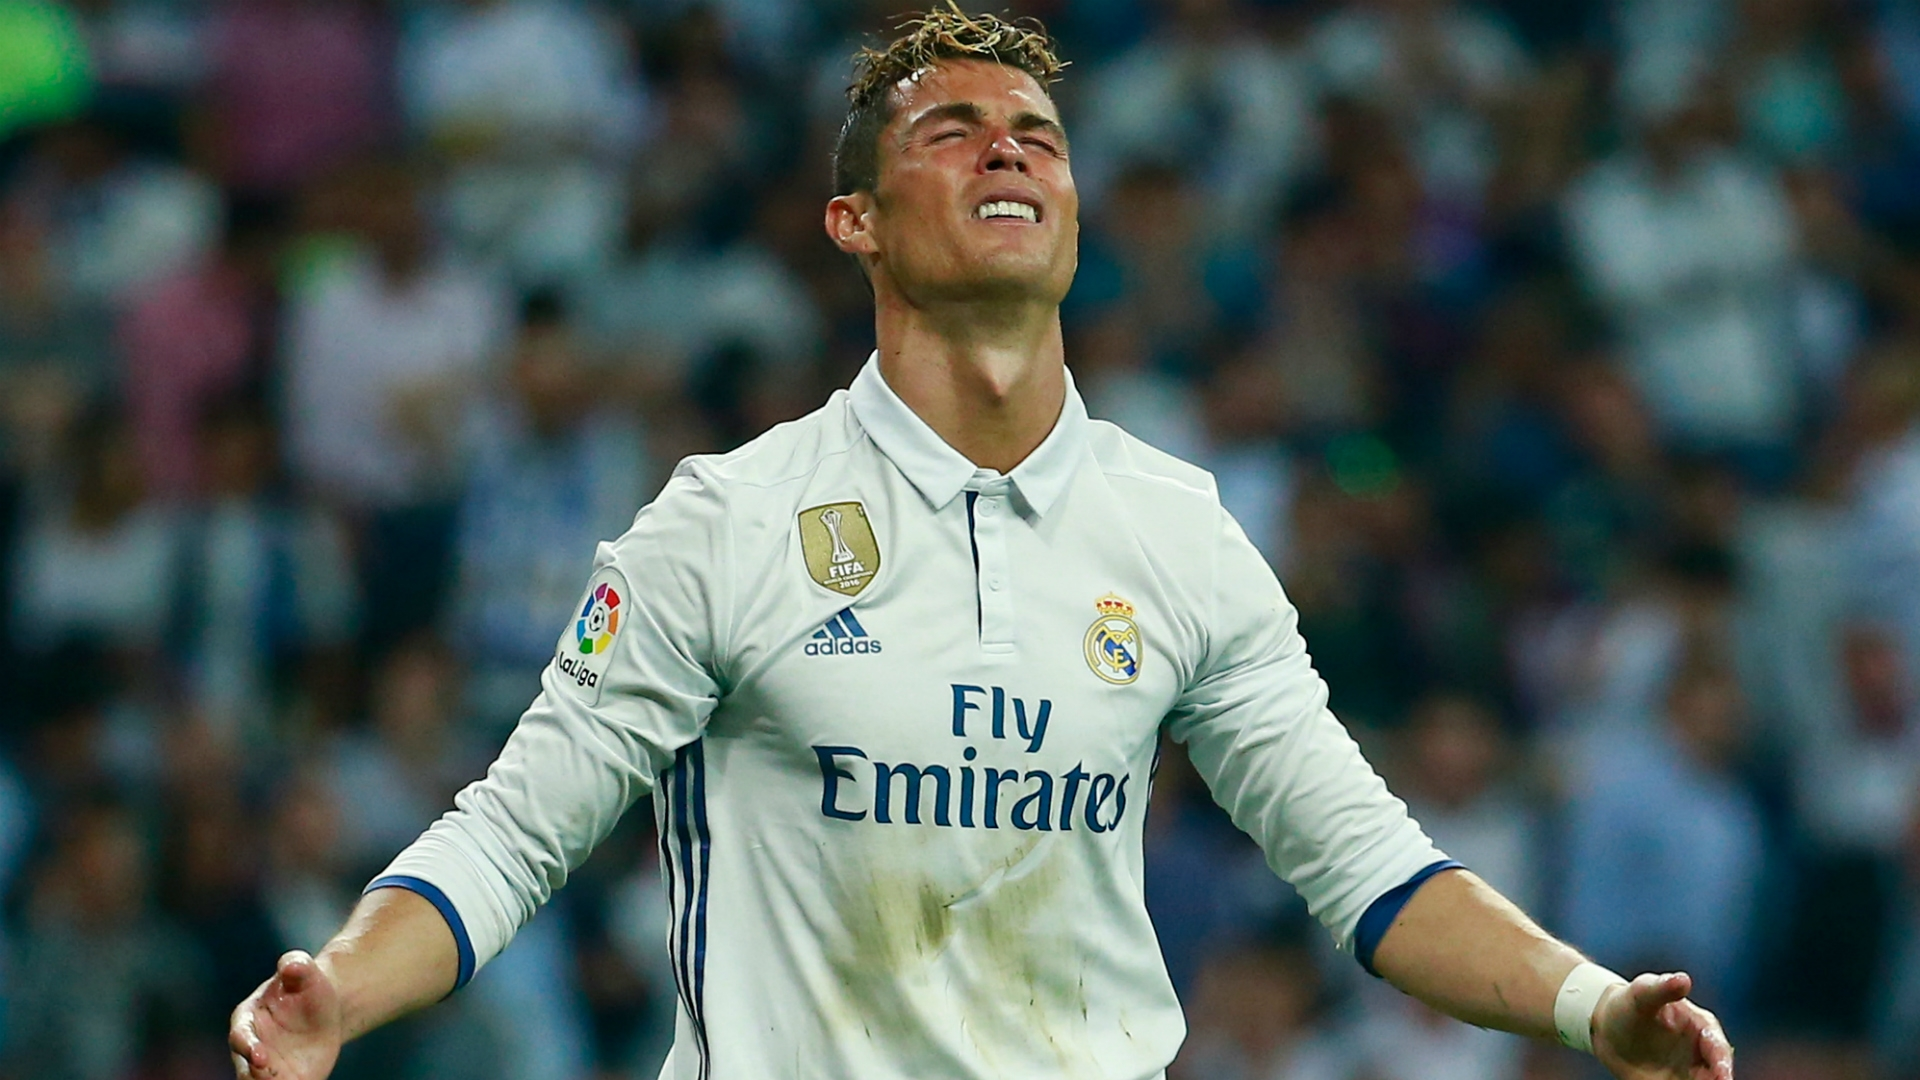 Ronaldo is set to start for Real Madrid in the Champions League final against Juventus